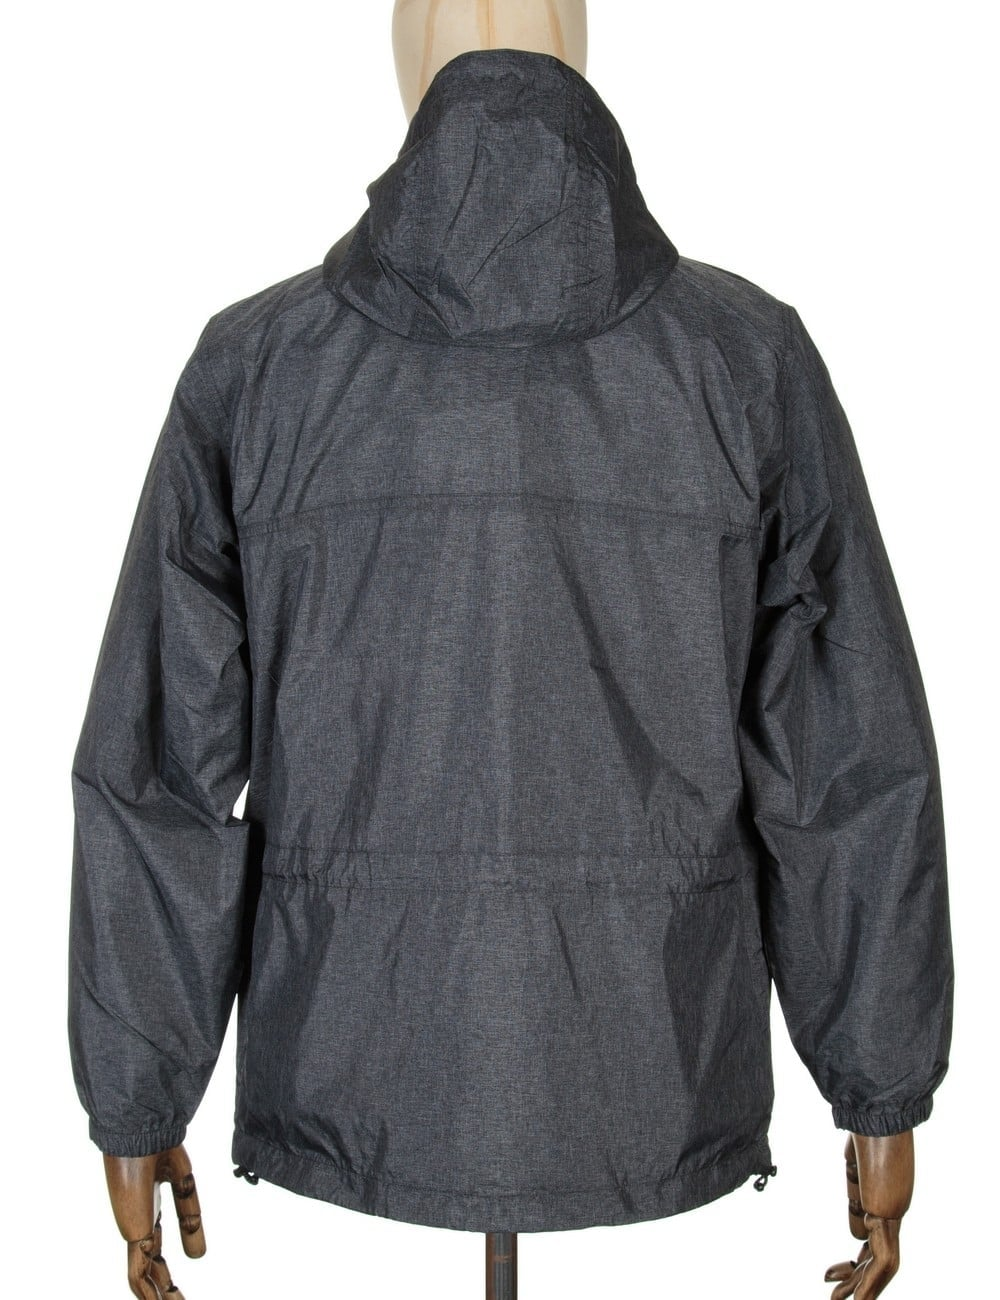 carhartt spinner pullover jacket black carhartt from fat buddha store uk. Black Bedroom Furniture Sets. Home Design Ideas